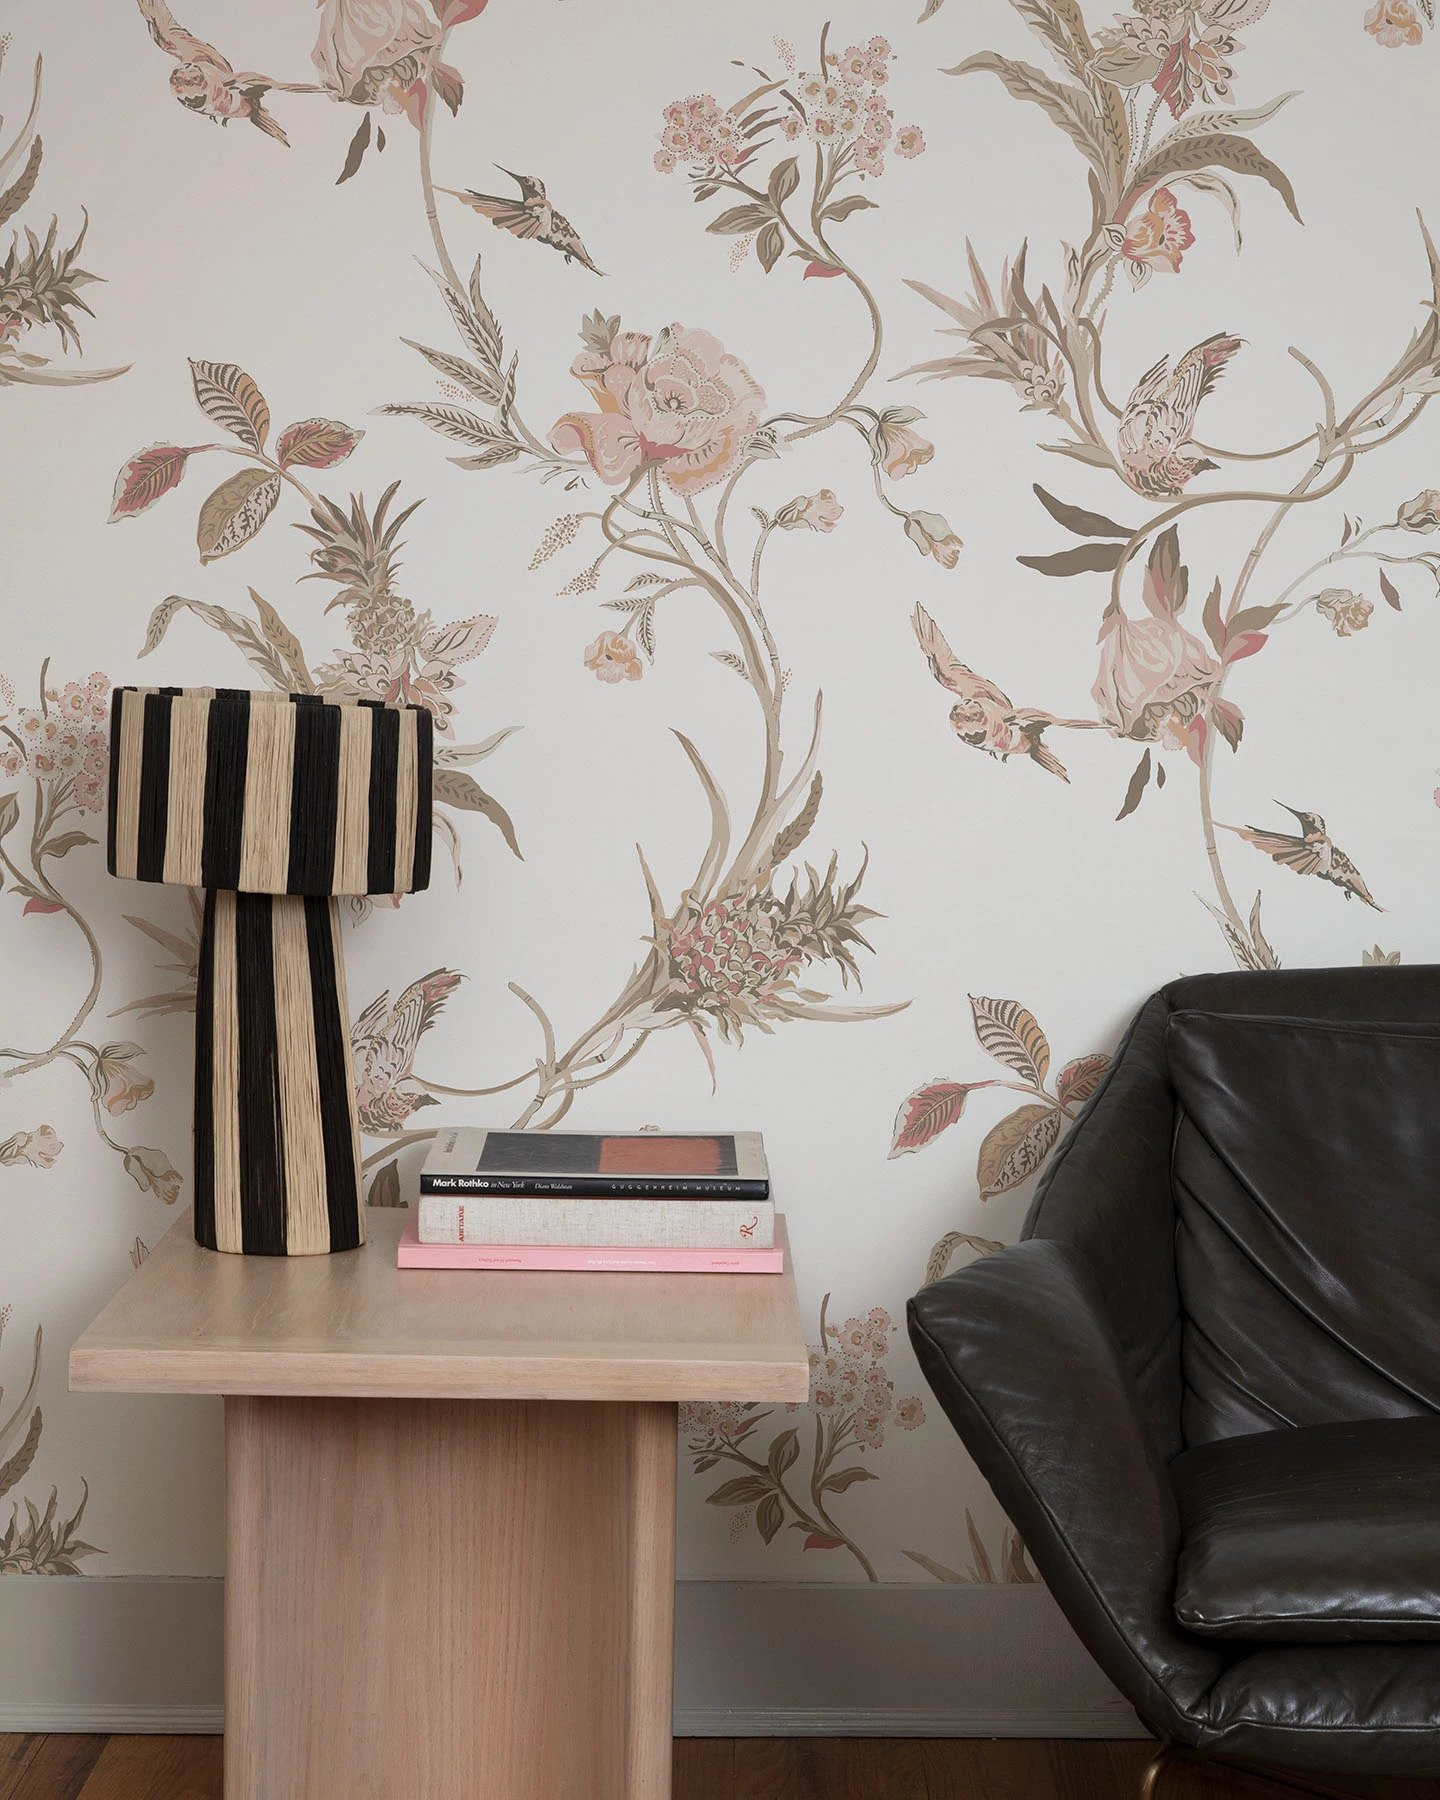 The Lawns Co Quint Botanical Wallpaper in Clay